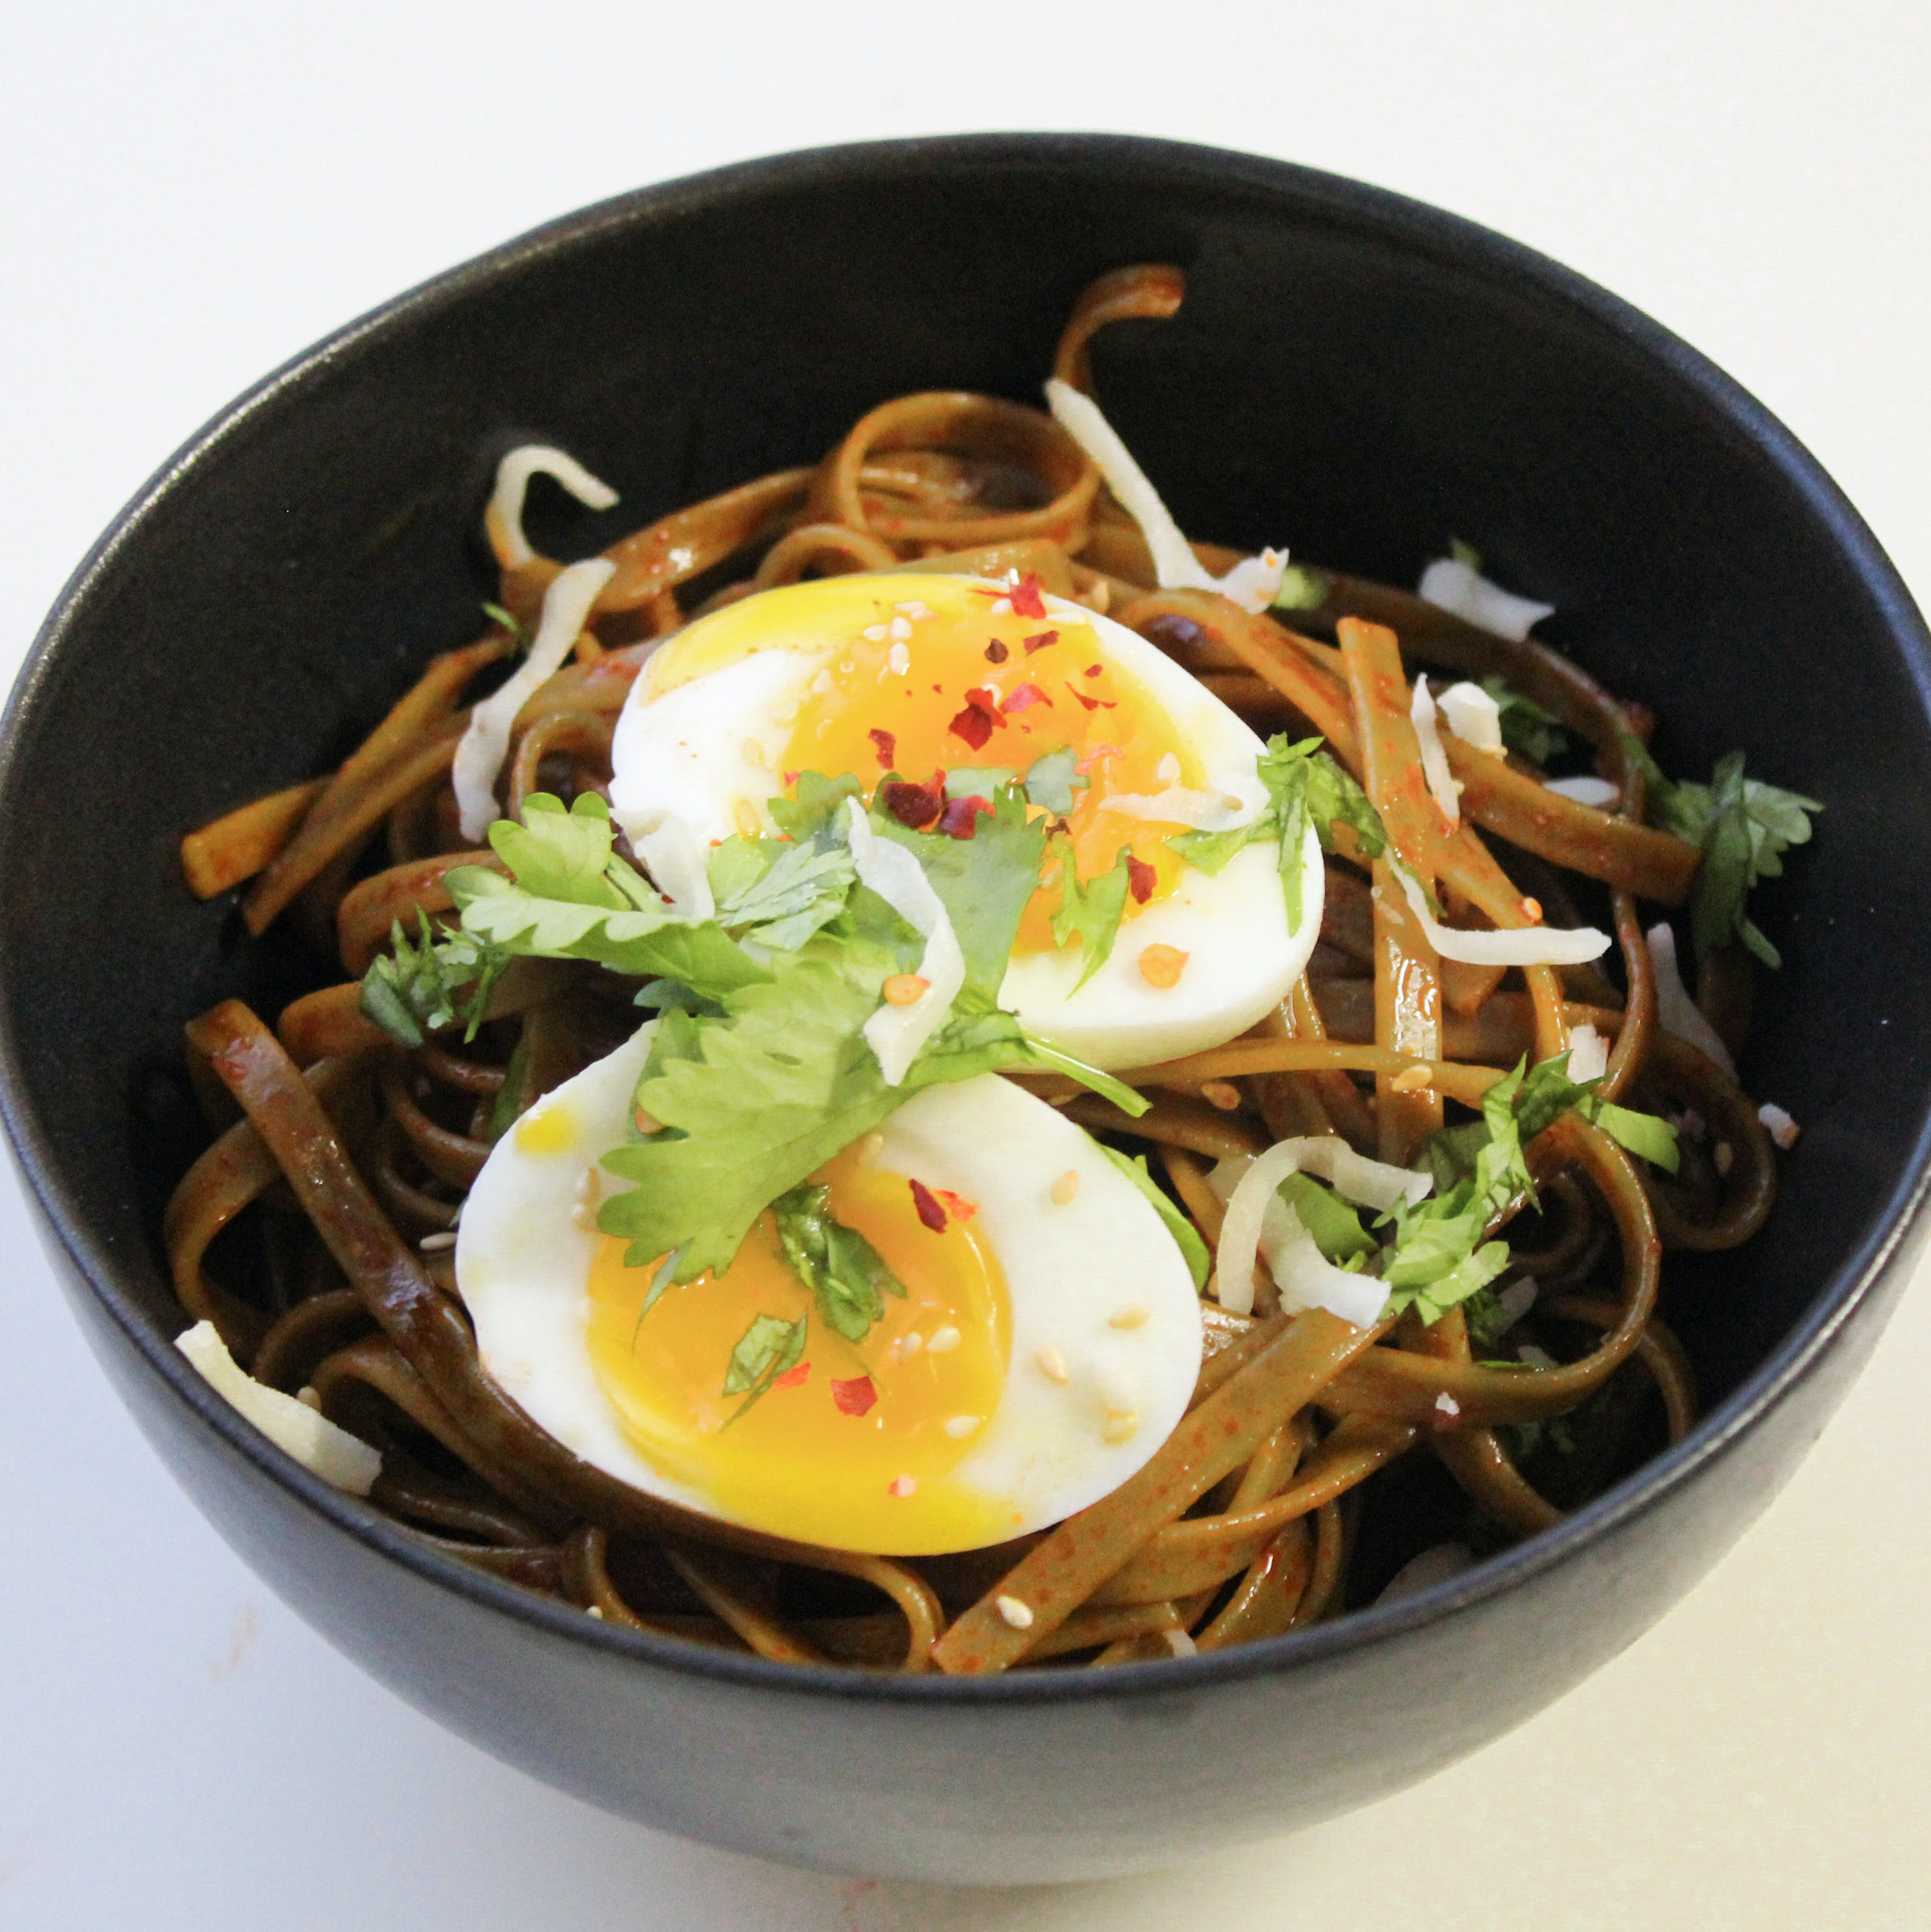 Bowl Filled With Noodles and Hard Boiled Egg